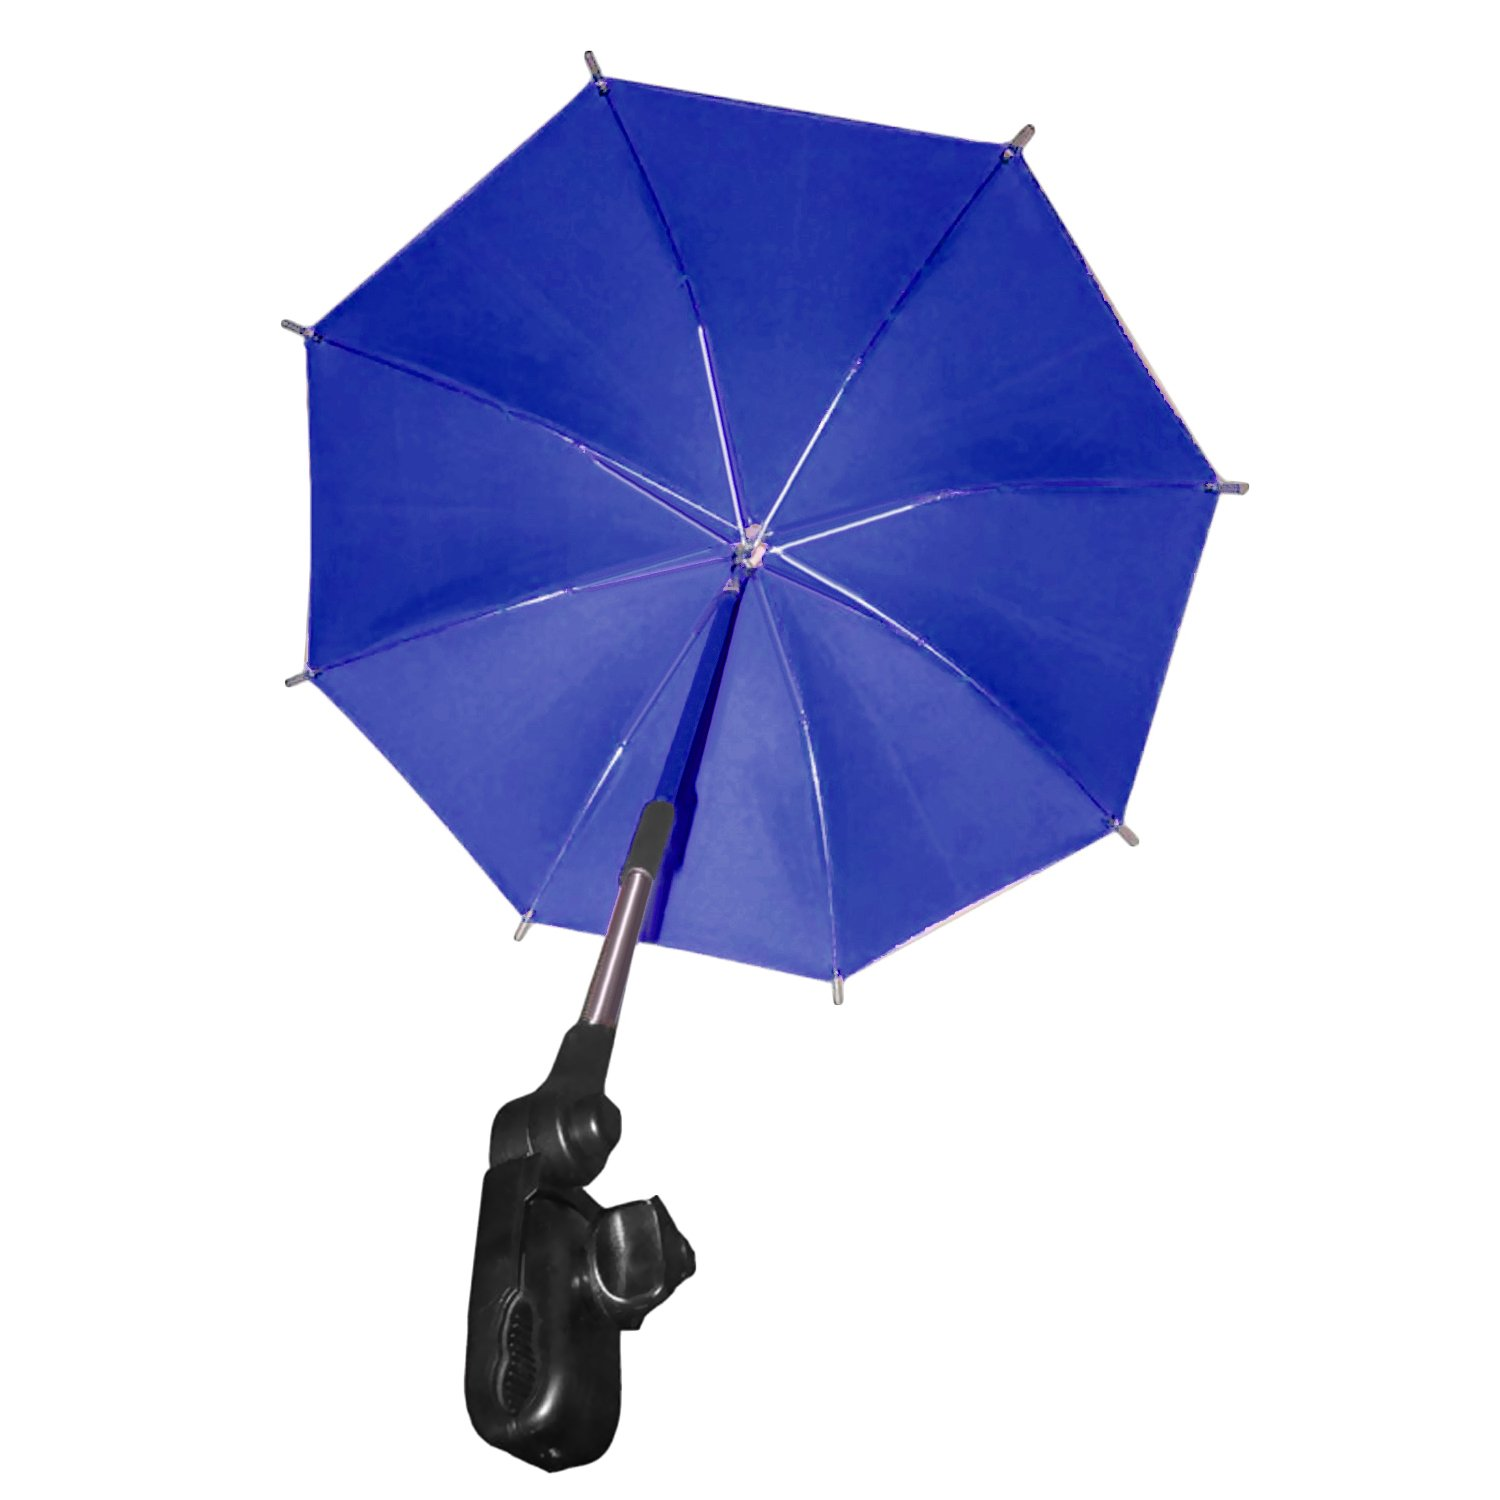 Umbrella for Stroller, Adjustable Baby Stroller Sun Shade Pram UV Rain Protection Umbrella Parasol with Holder Clip for Wheelchair Pushchair Accessories Blue Migavan